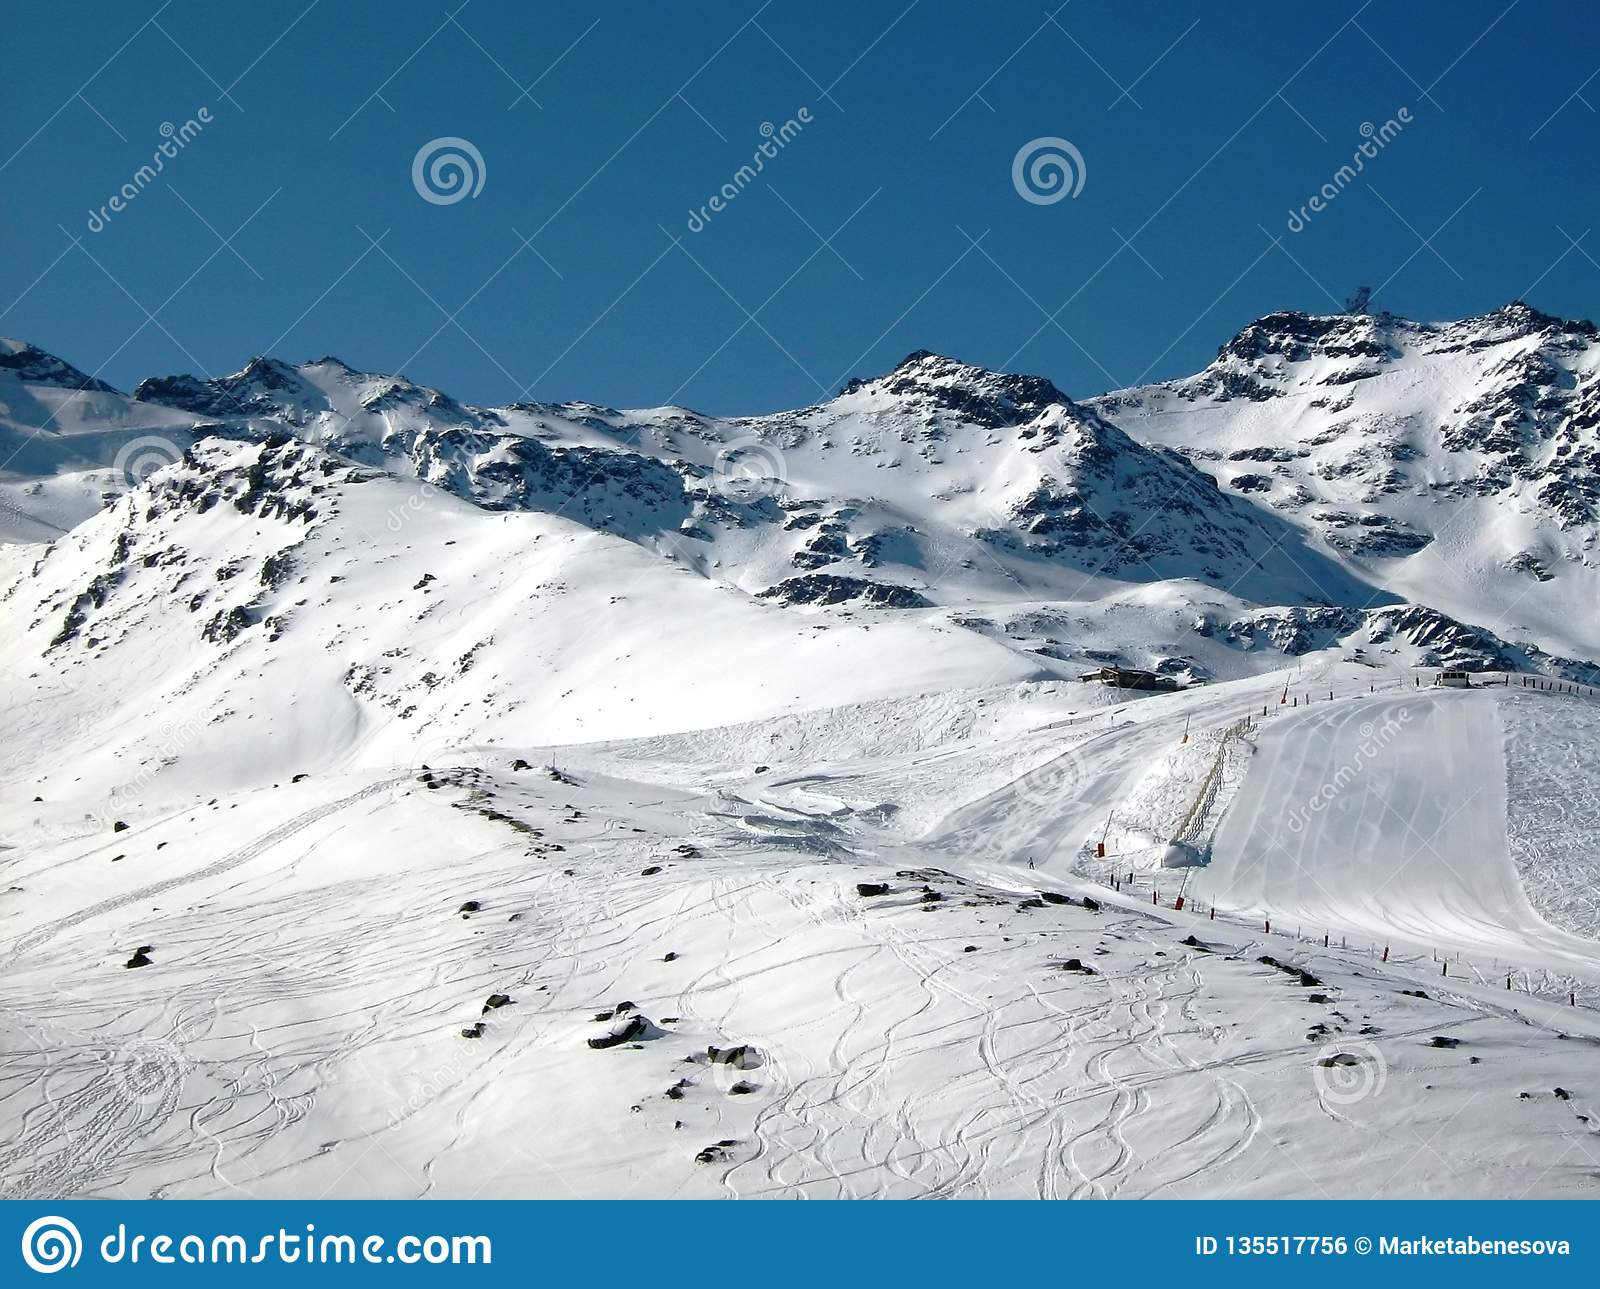 Ski traces and ski slope in the mountains